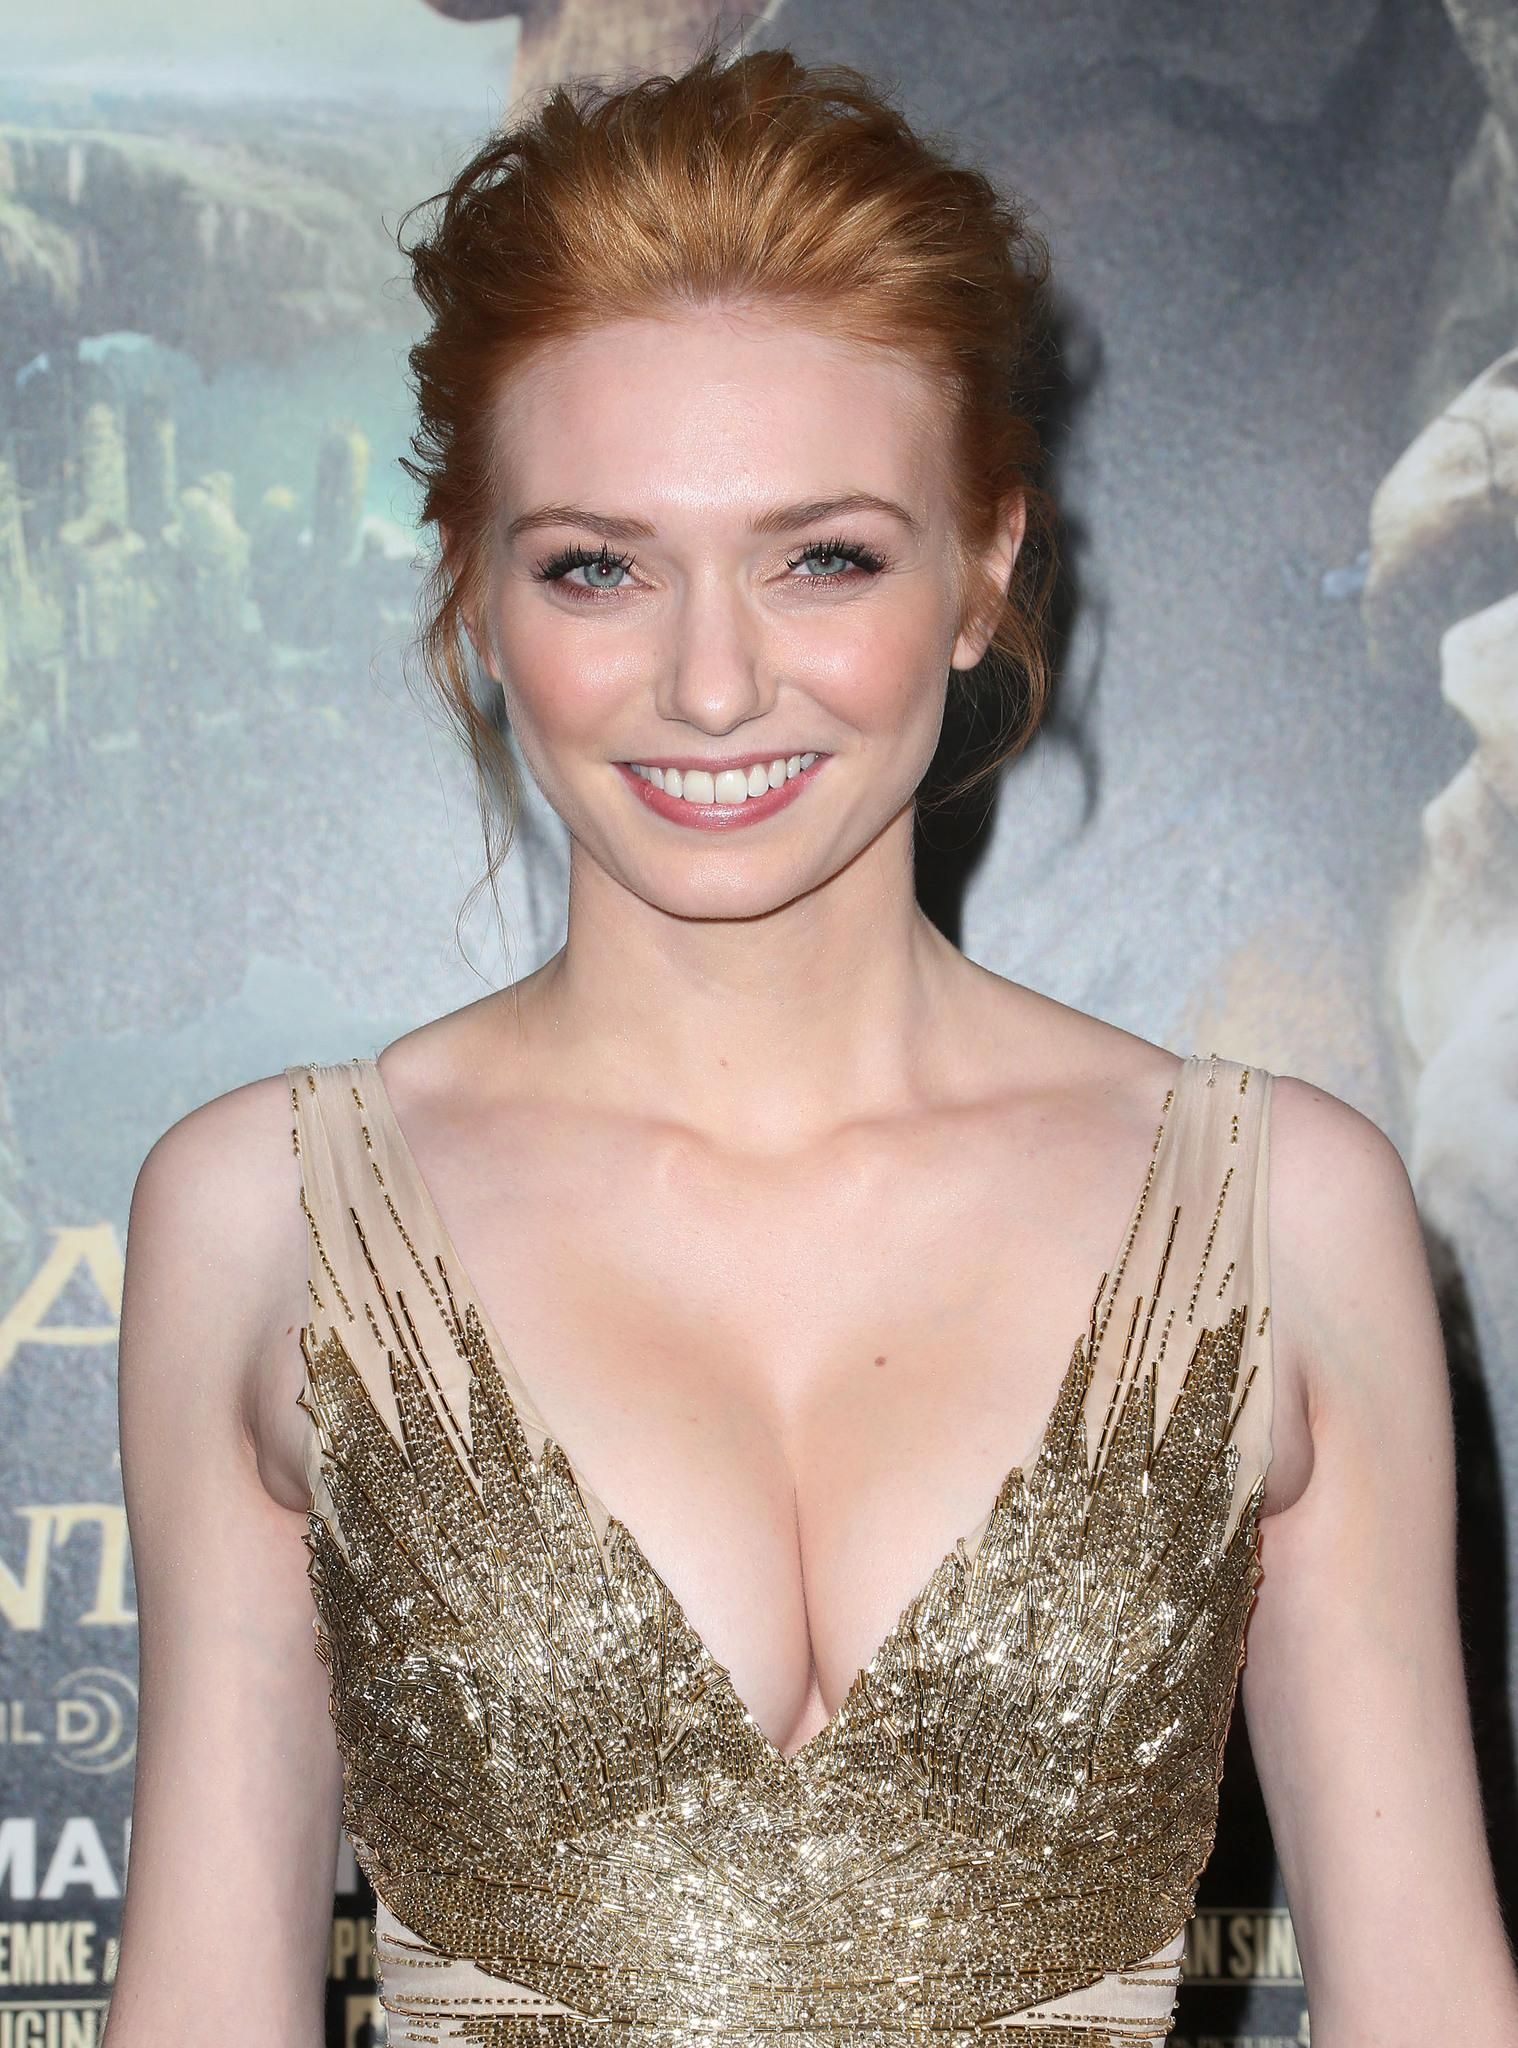 eleanor tomlinson gif hunteleanor tomlinson gif, eleanor tomlinson gif hunt, eleanor tomlinson poldark, eleanor tomlinson site, eleanor tomlinson height, eleanor tomlinson - medhel an gwyns, eleanor tomlinson photoshoot, eleanor tomlinson songs, eleanor tomlinson and louis tomlinson, eleanor tomlinson and aidan turner relationship, eleanor tomlinson scene, eleanor tomlinson listal, eleanor tomlinson imdb, eleanor tomlinson tattoo, eleanor tomlinson height weight, eleanor tomlinson wikipedia, eleanor tomlinson screencaps, eleanor tomlinson education, eleanor tomlinson pregnant, eleanor tomlinson gif hunt tumblr